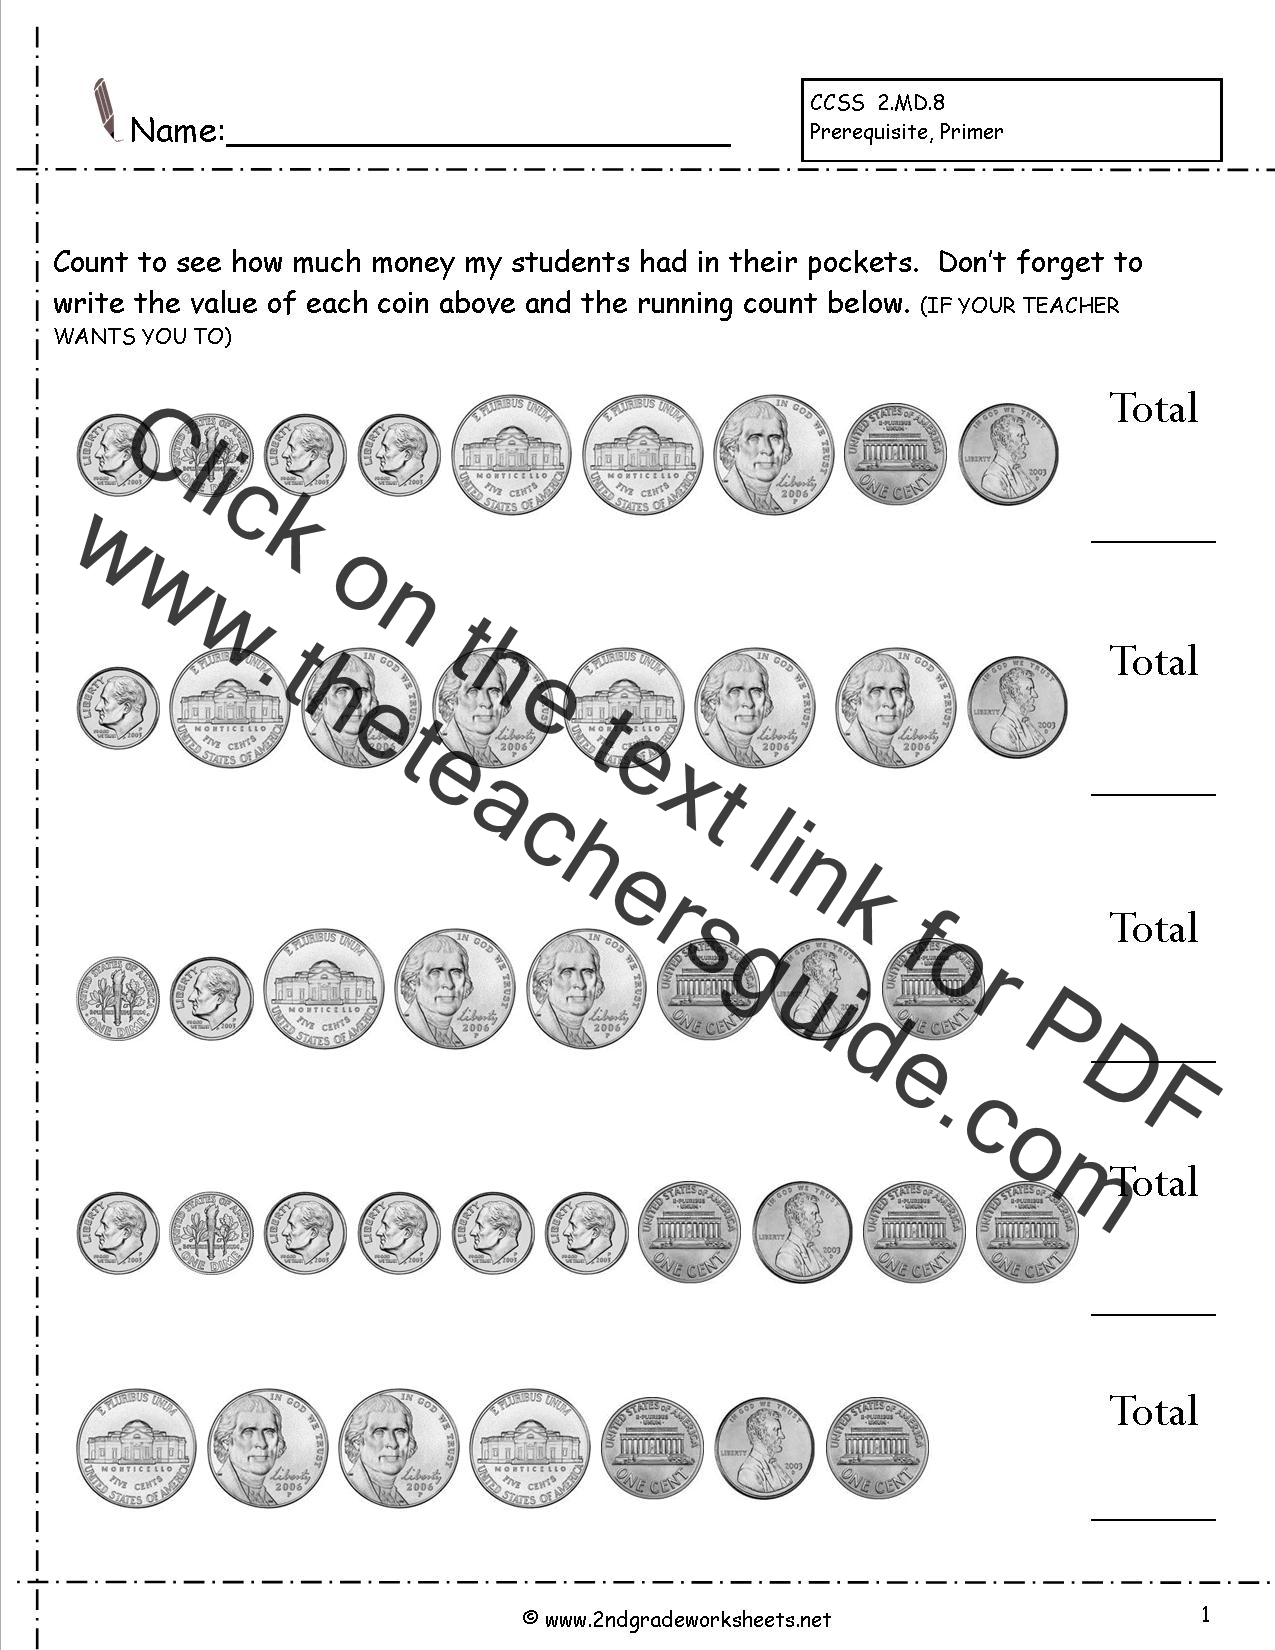 Counting Coins and Money Worksheets and Printouts – Identifying Coins Worksheets